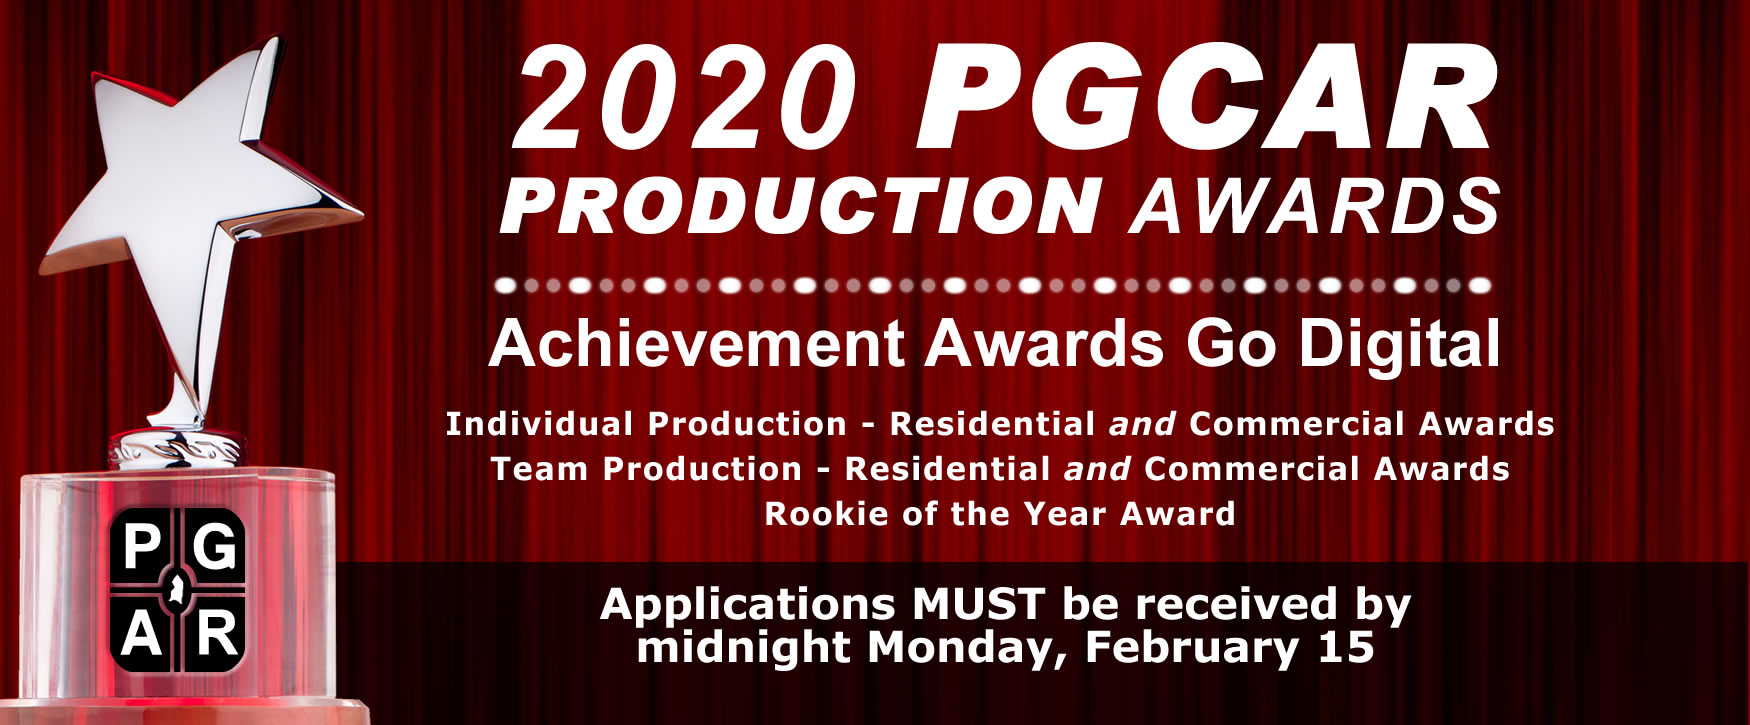 he 2020 PGCAR Awards Application is Digital! Award entries are due by midnight Friday, February 12.